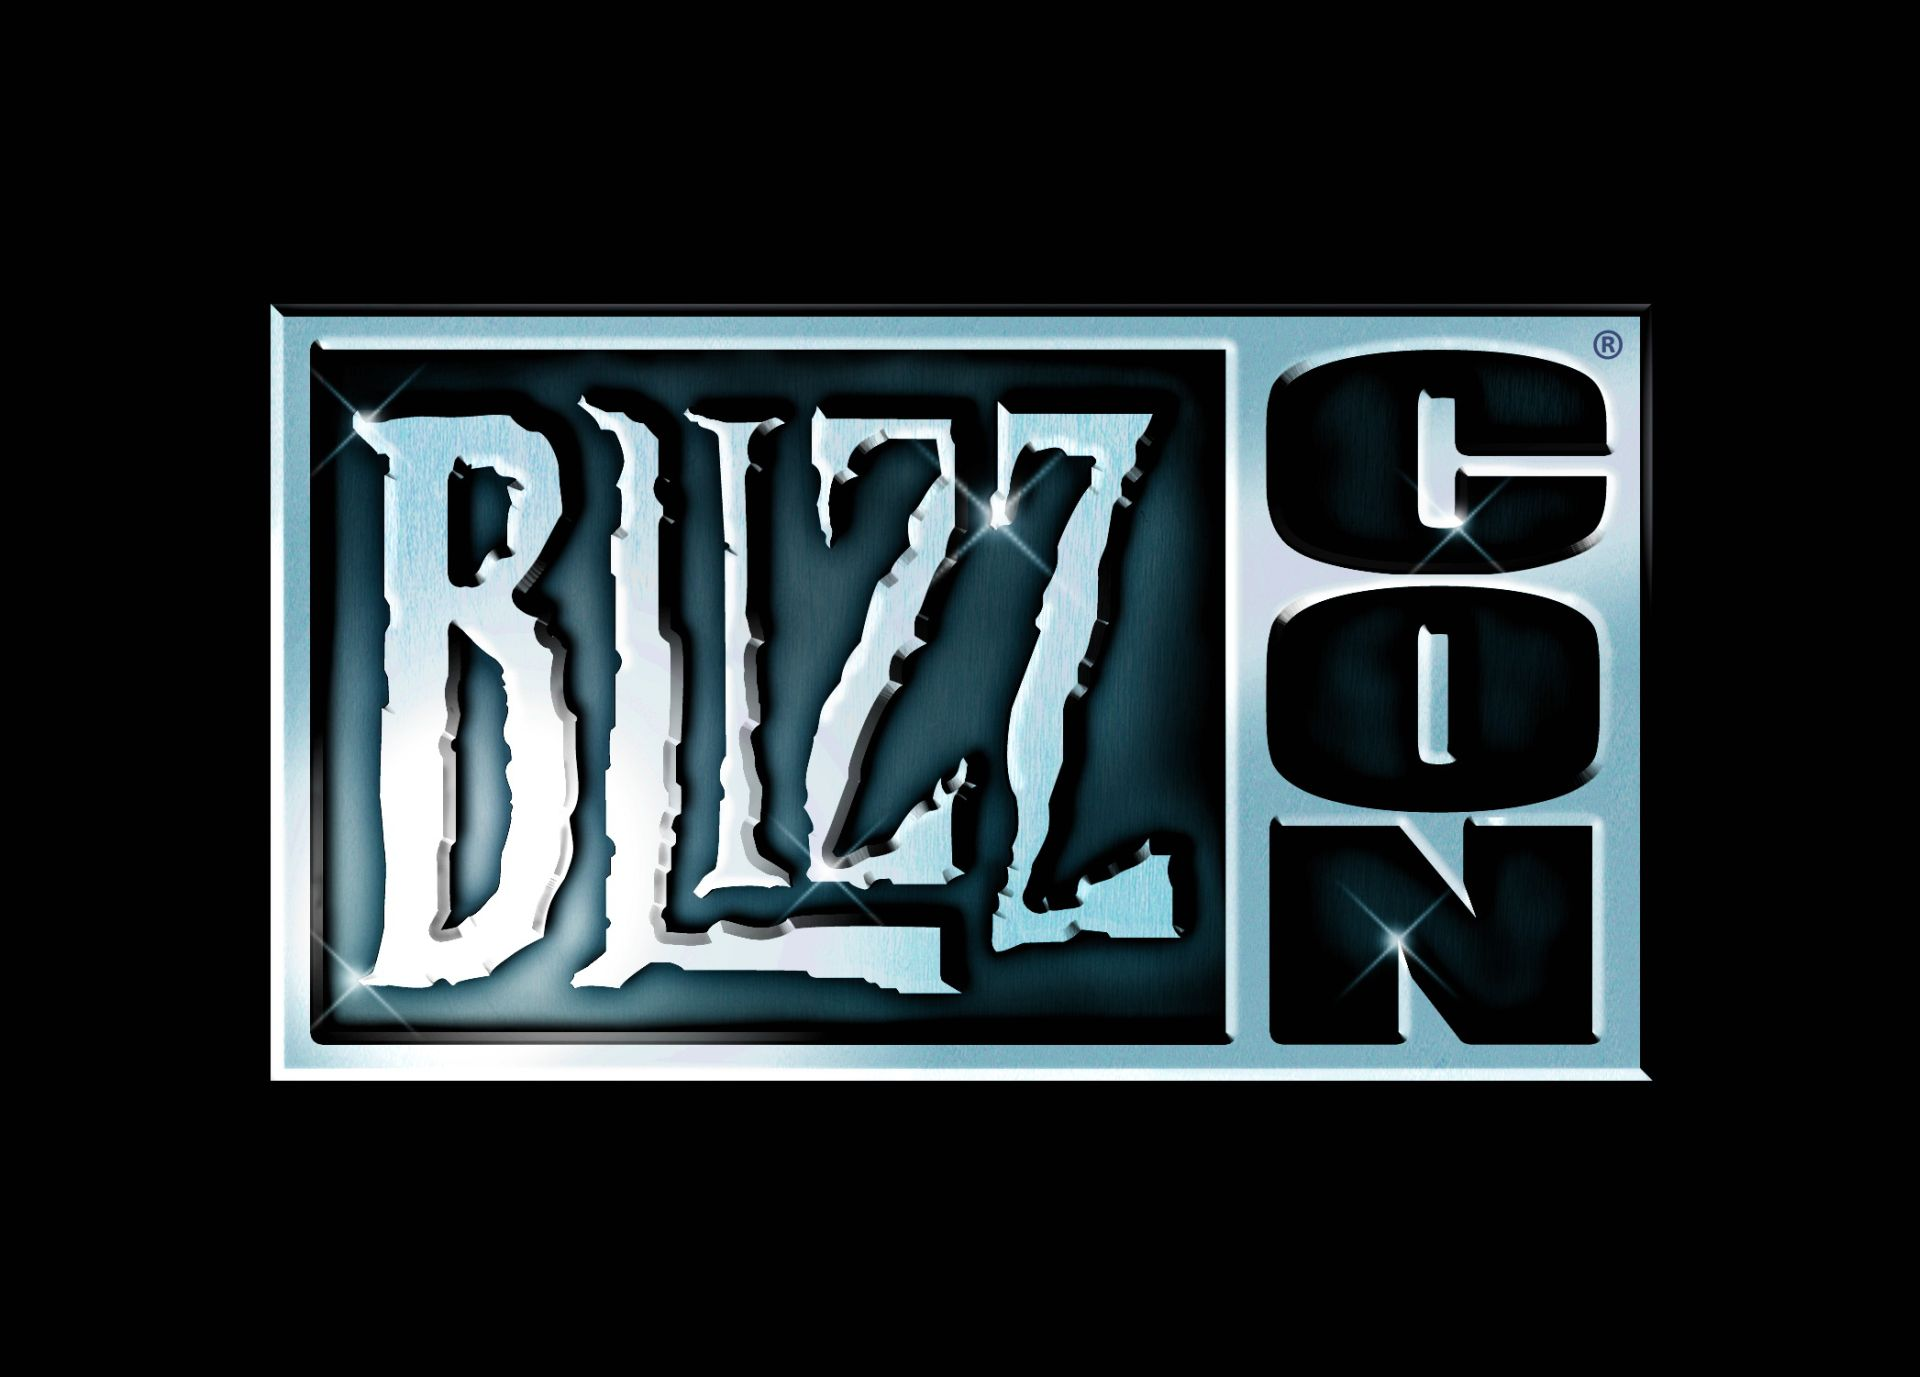 SoCal punk legends Blink-182 to close out Blizzcon 2013